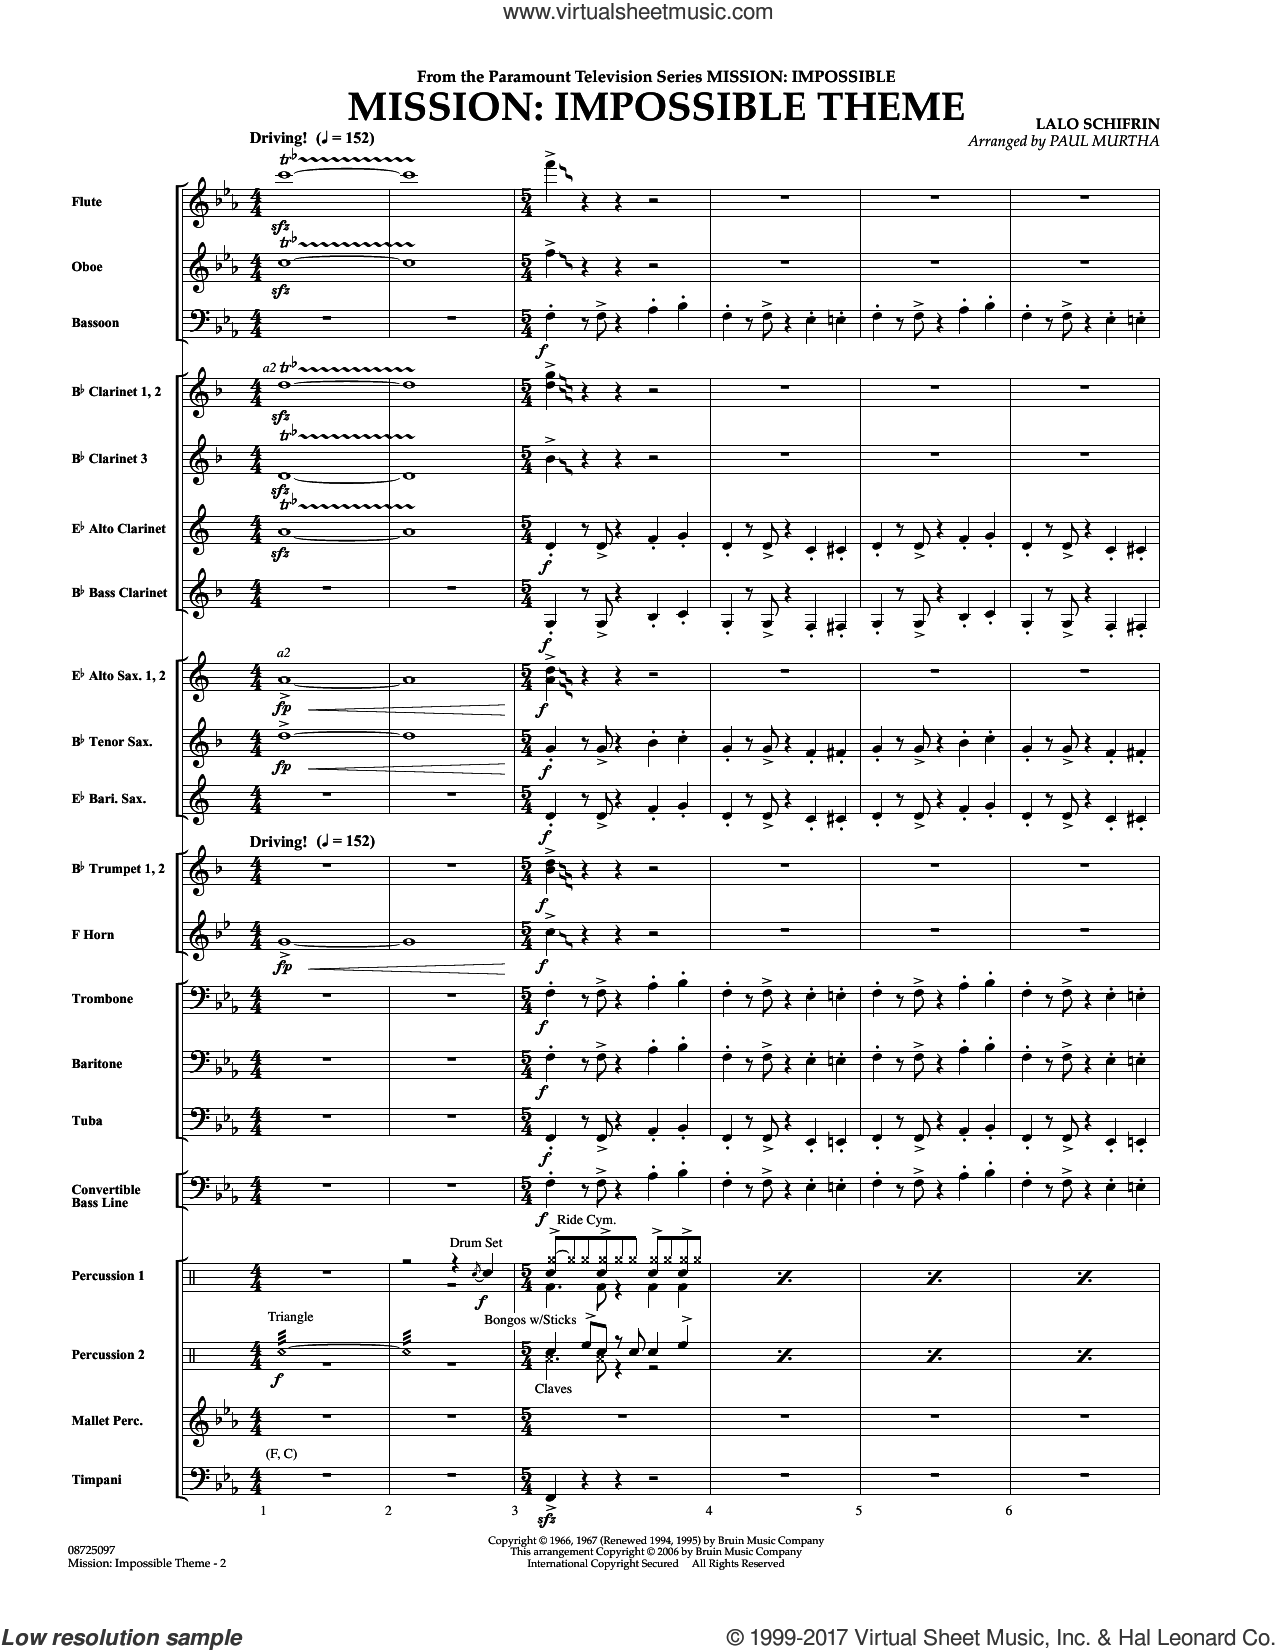 Mission: Impossible Theme (COMPLETE) sheet music for concert band by Paul Murtha, Adam Clayton and Larry Mullen and Lalo Schifrin, intermediate. Score Image Preview.